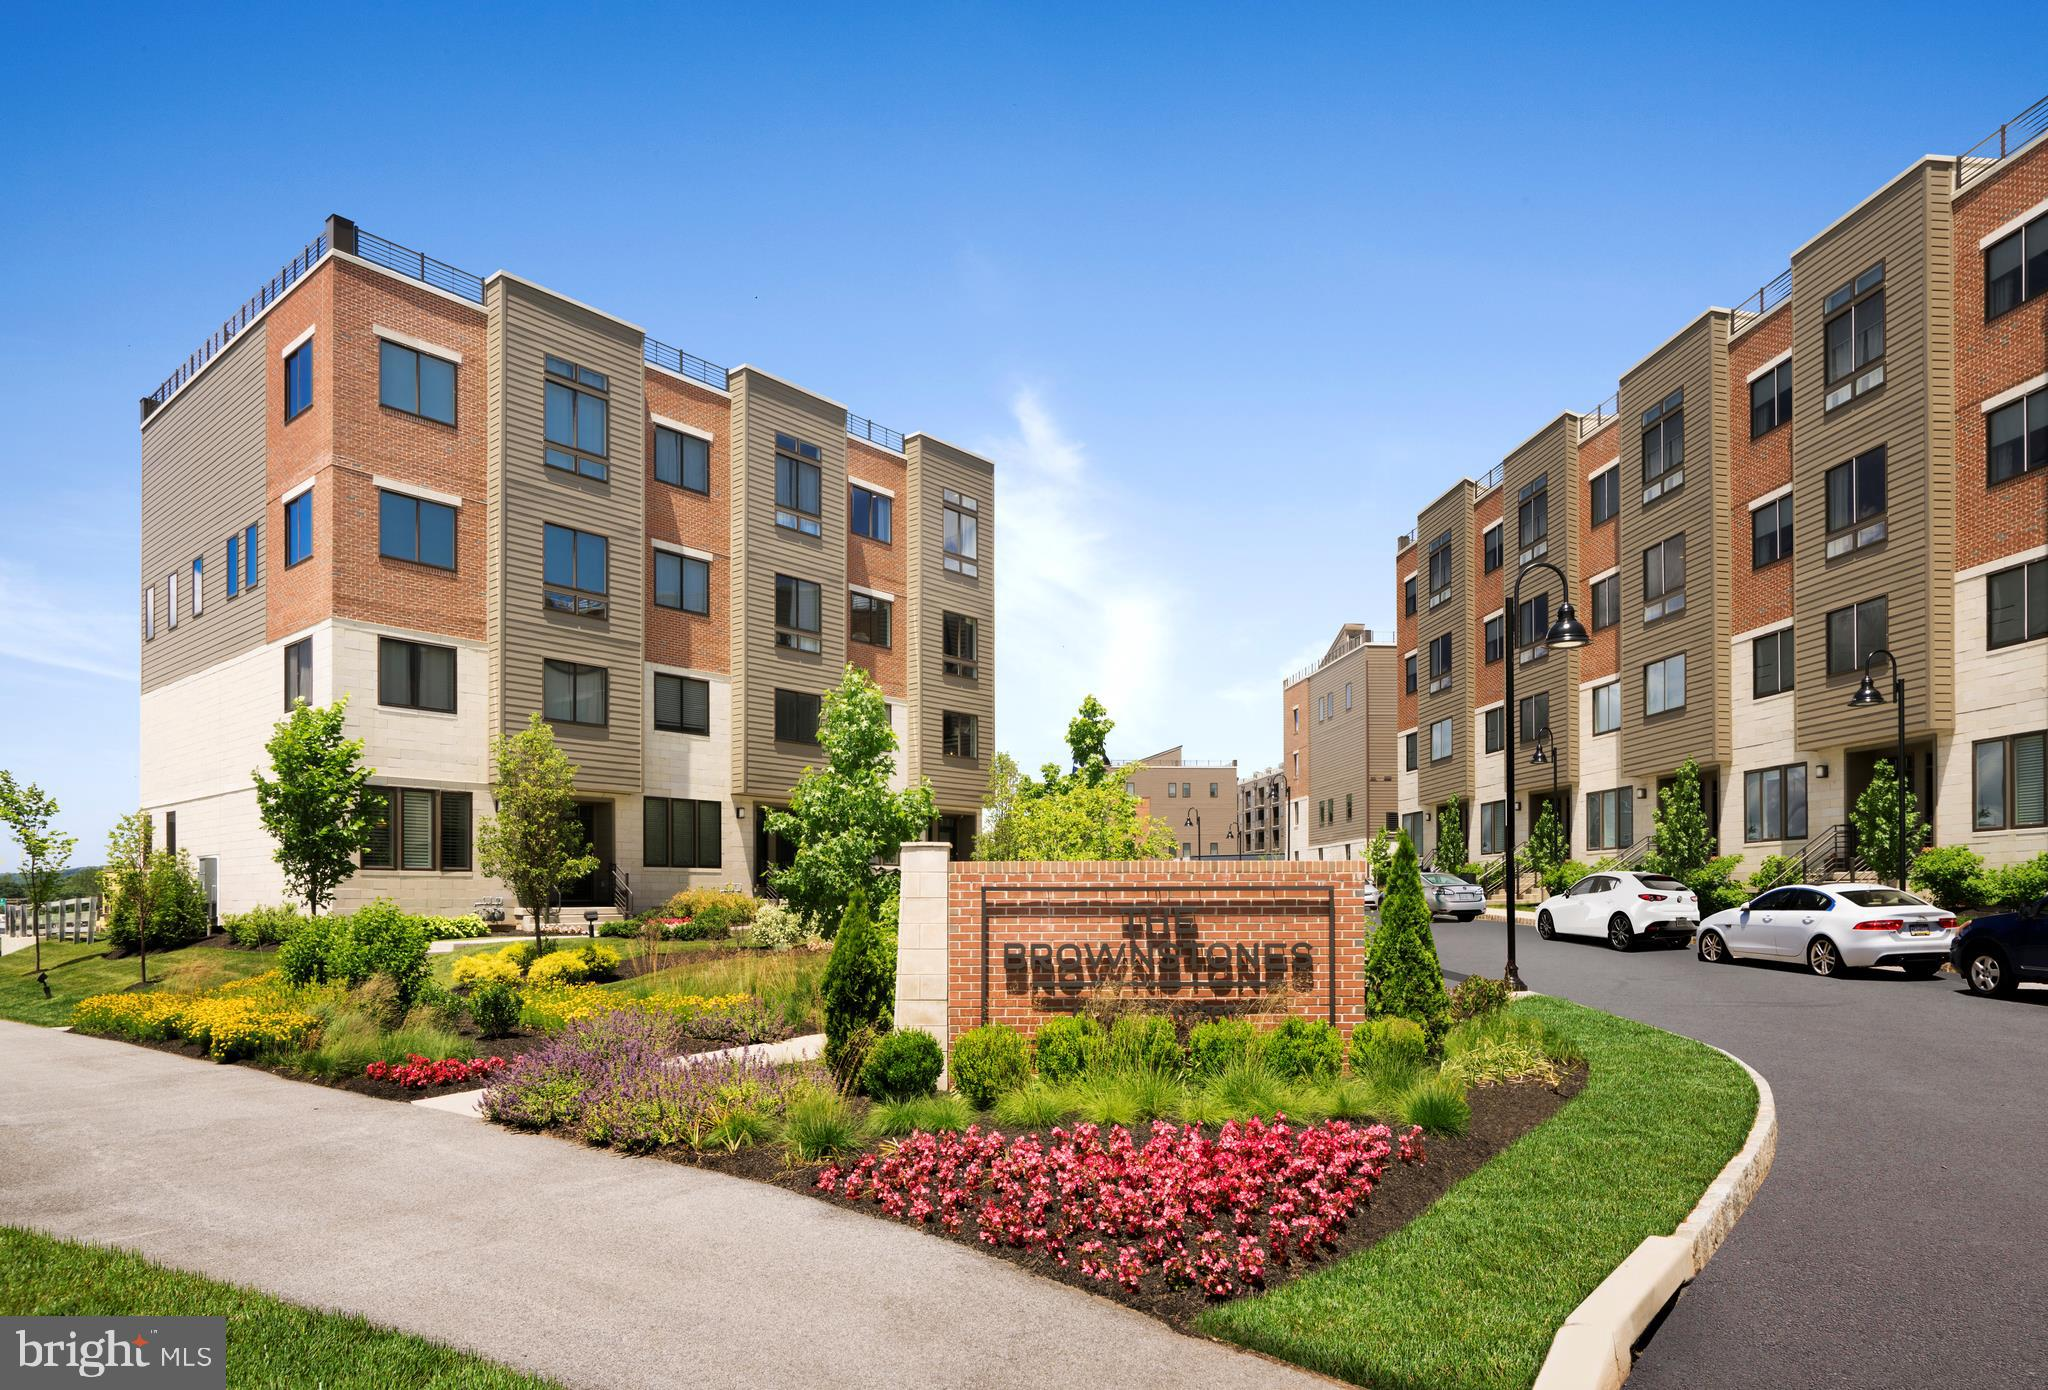 101 LAKEVIEW COURT 101, KING OF PRUSSIA, PA 19406